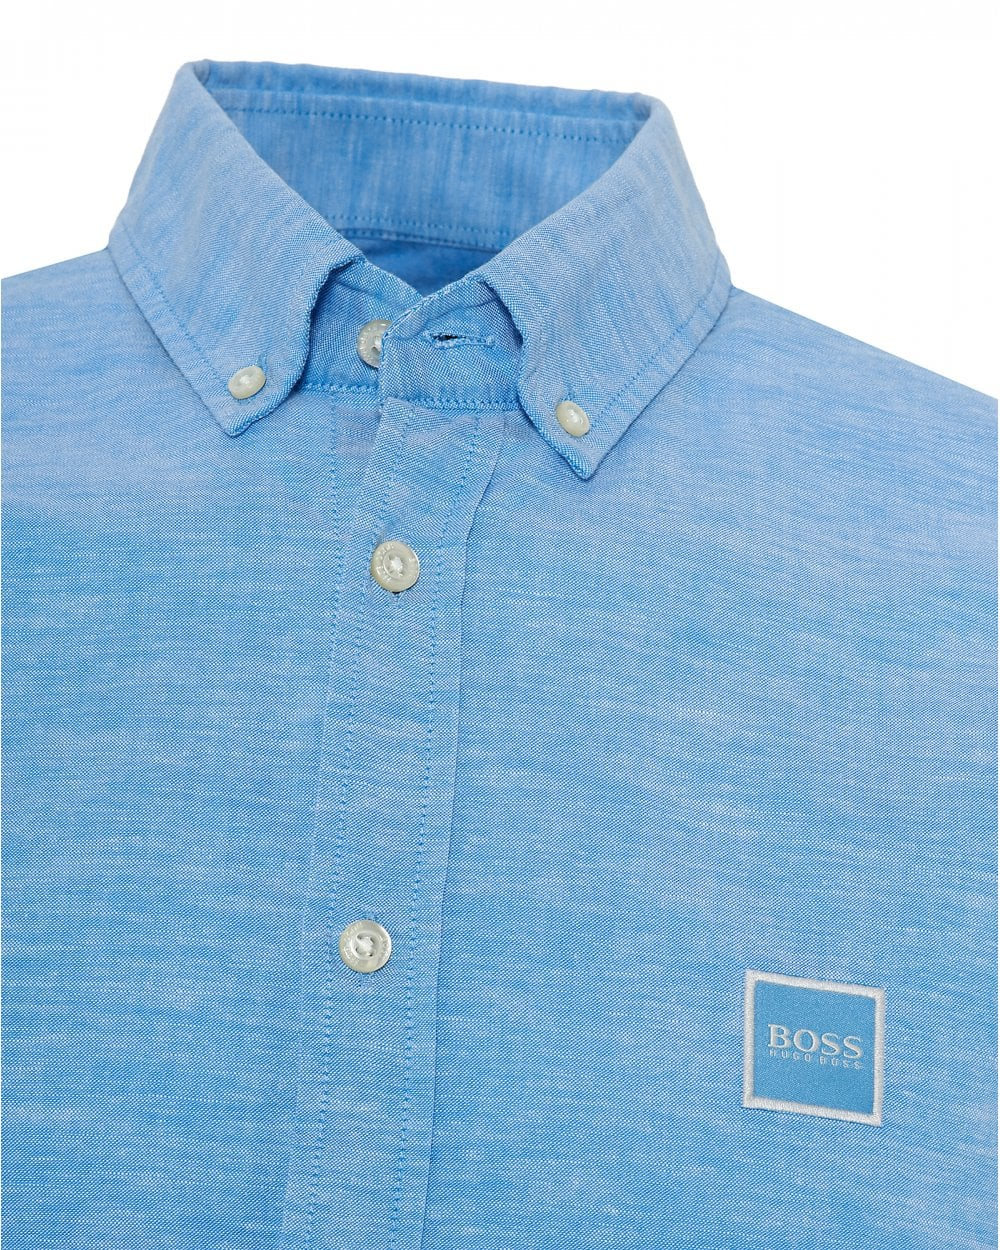 4028e685 BOSS Casual Mens Mabsoot Slim Fit Sky Blue Oxford Shirt